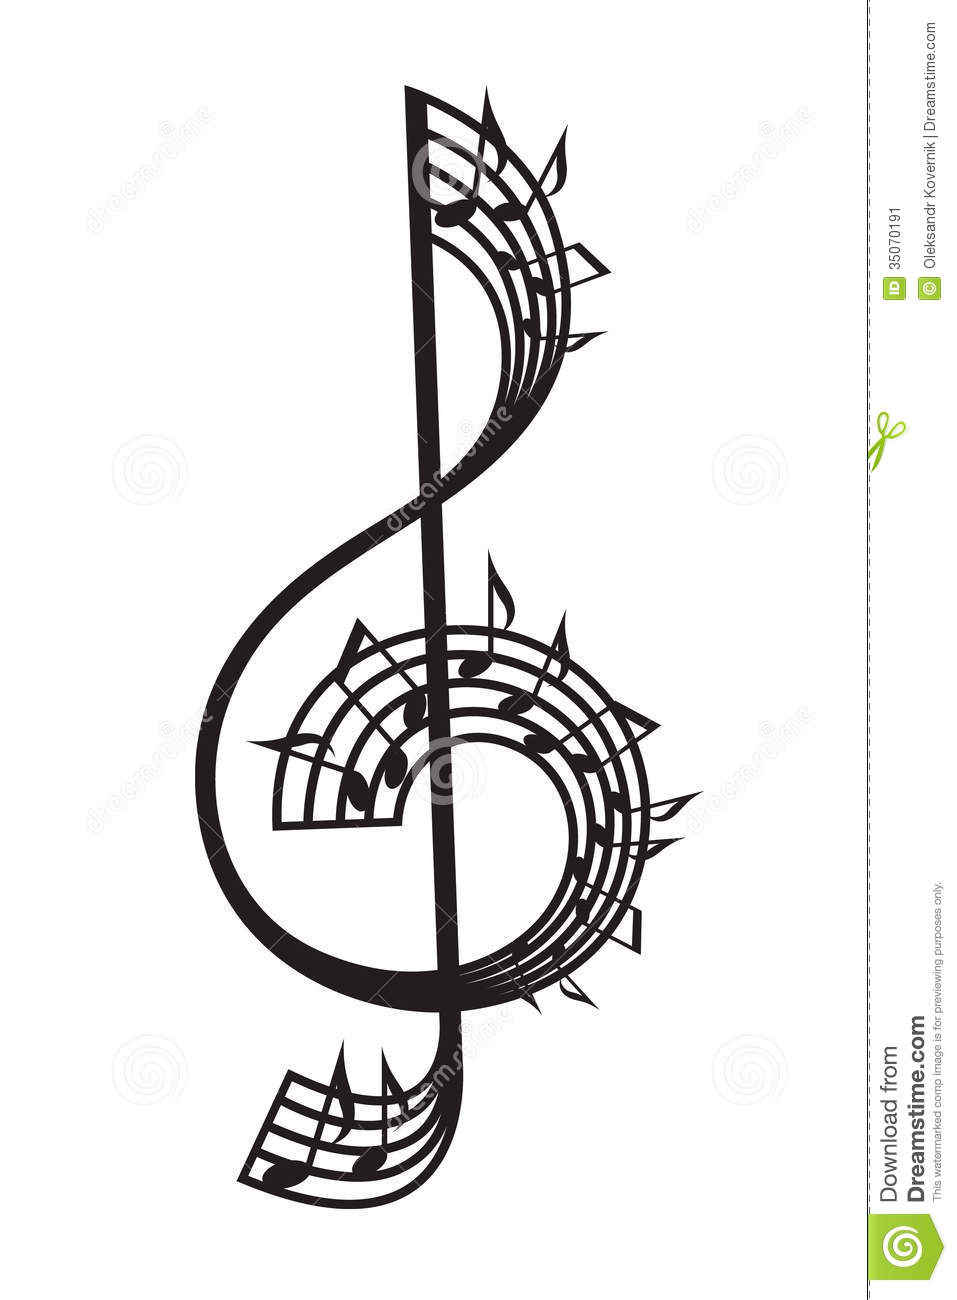 Treble clef and notes stock vector. Image of song, melody